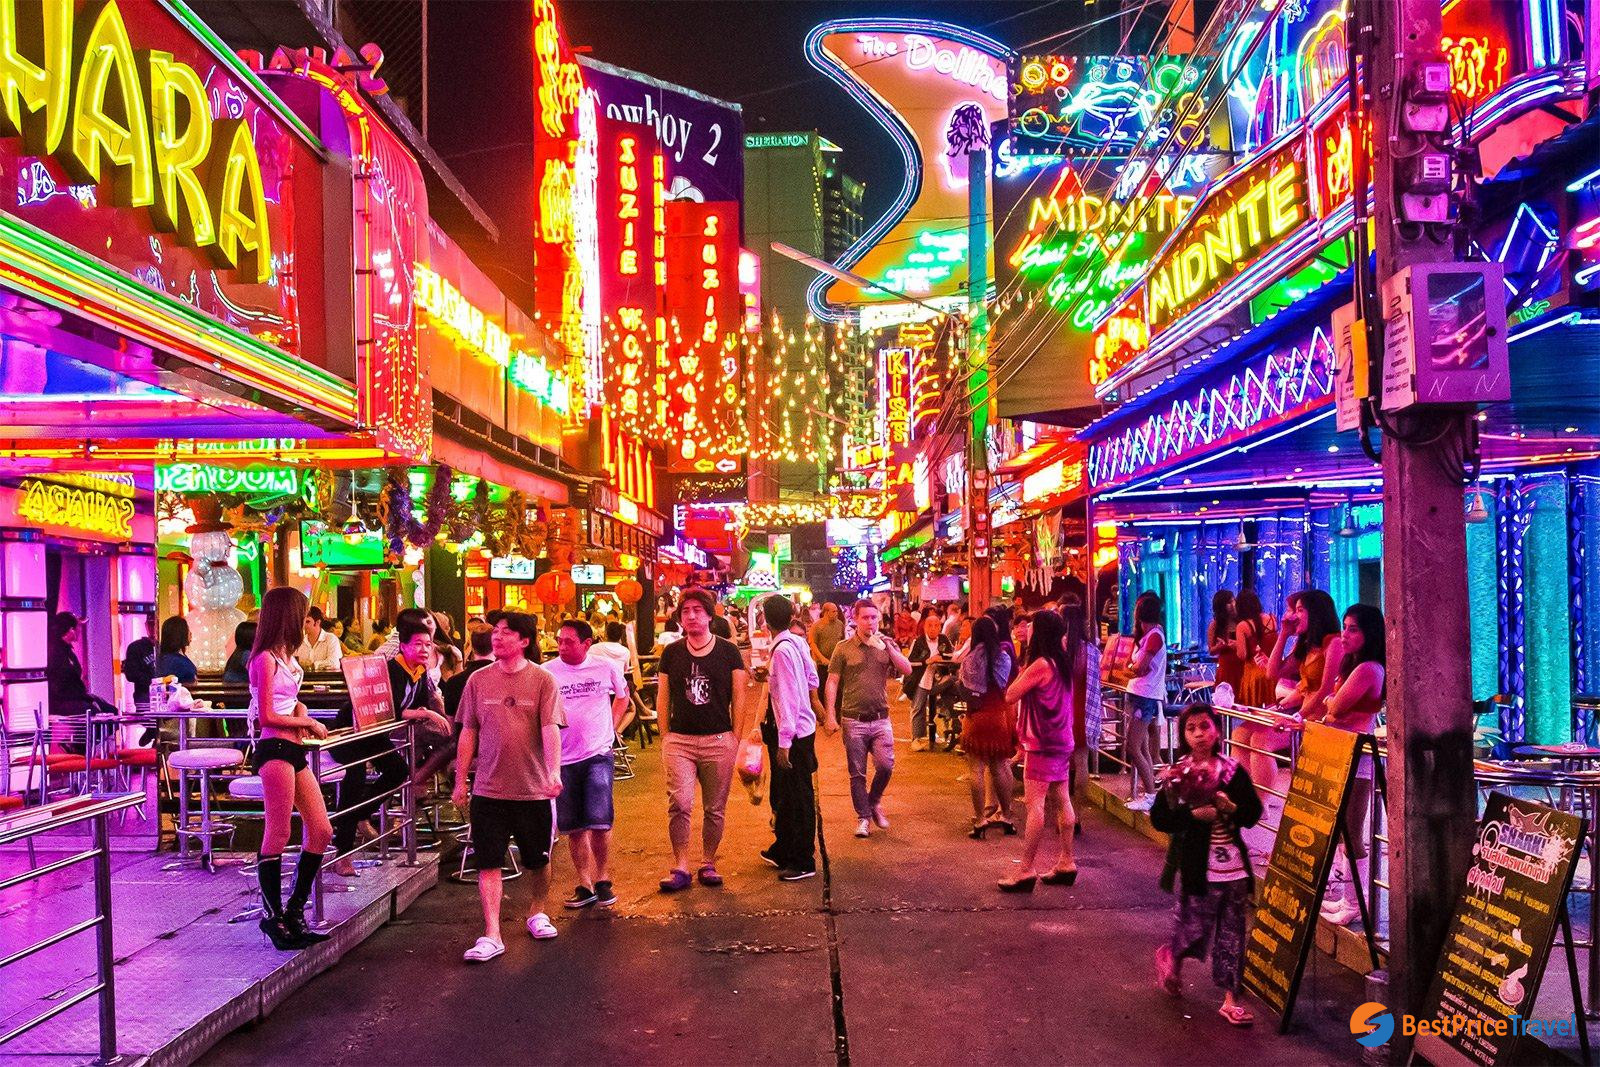 Explore Red Light District - 10 Best thing to do in Thailand